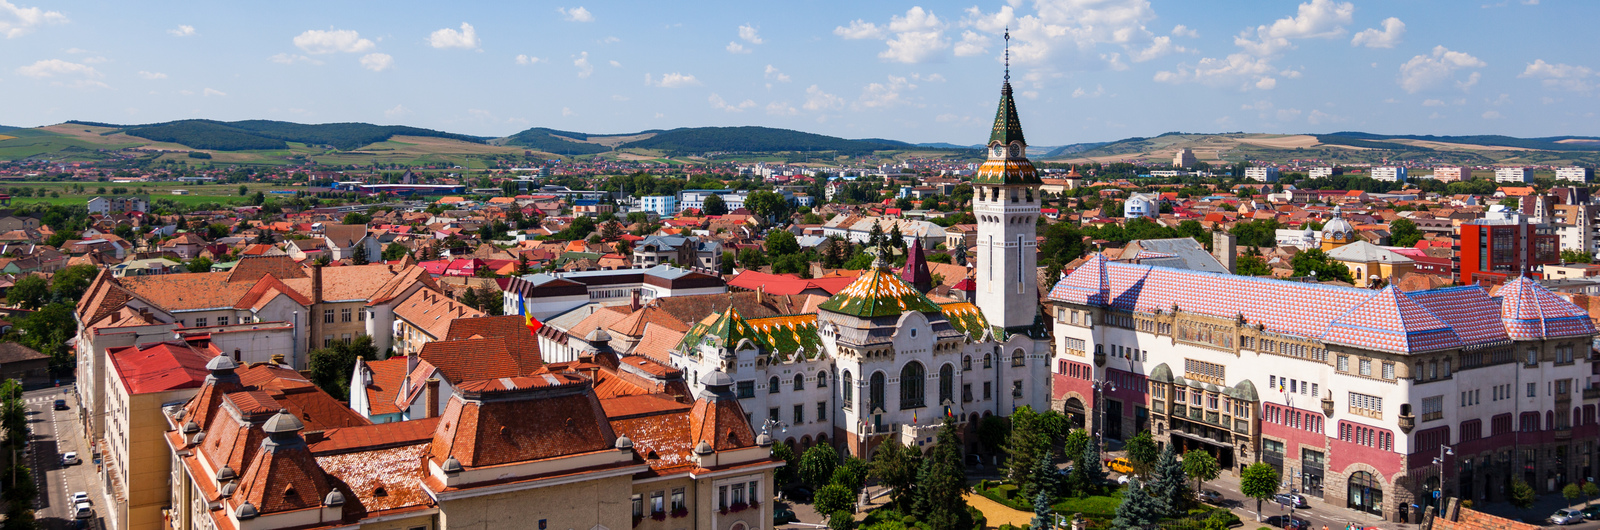 targu mures city header